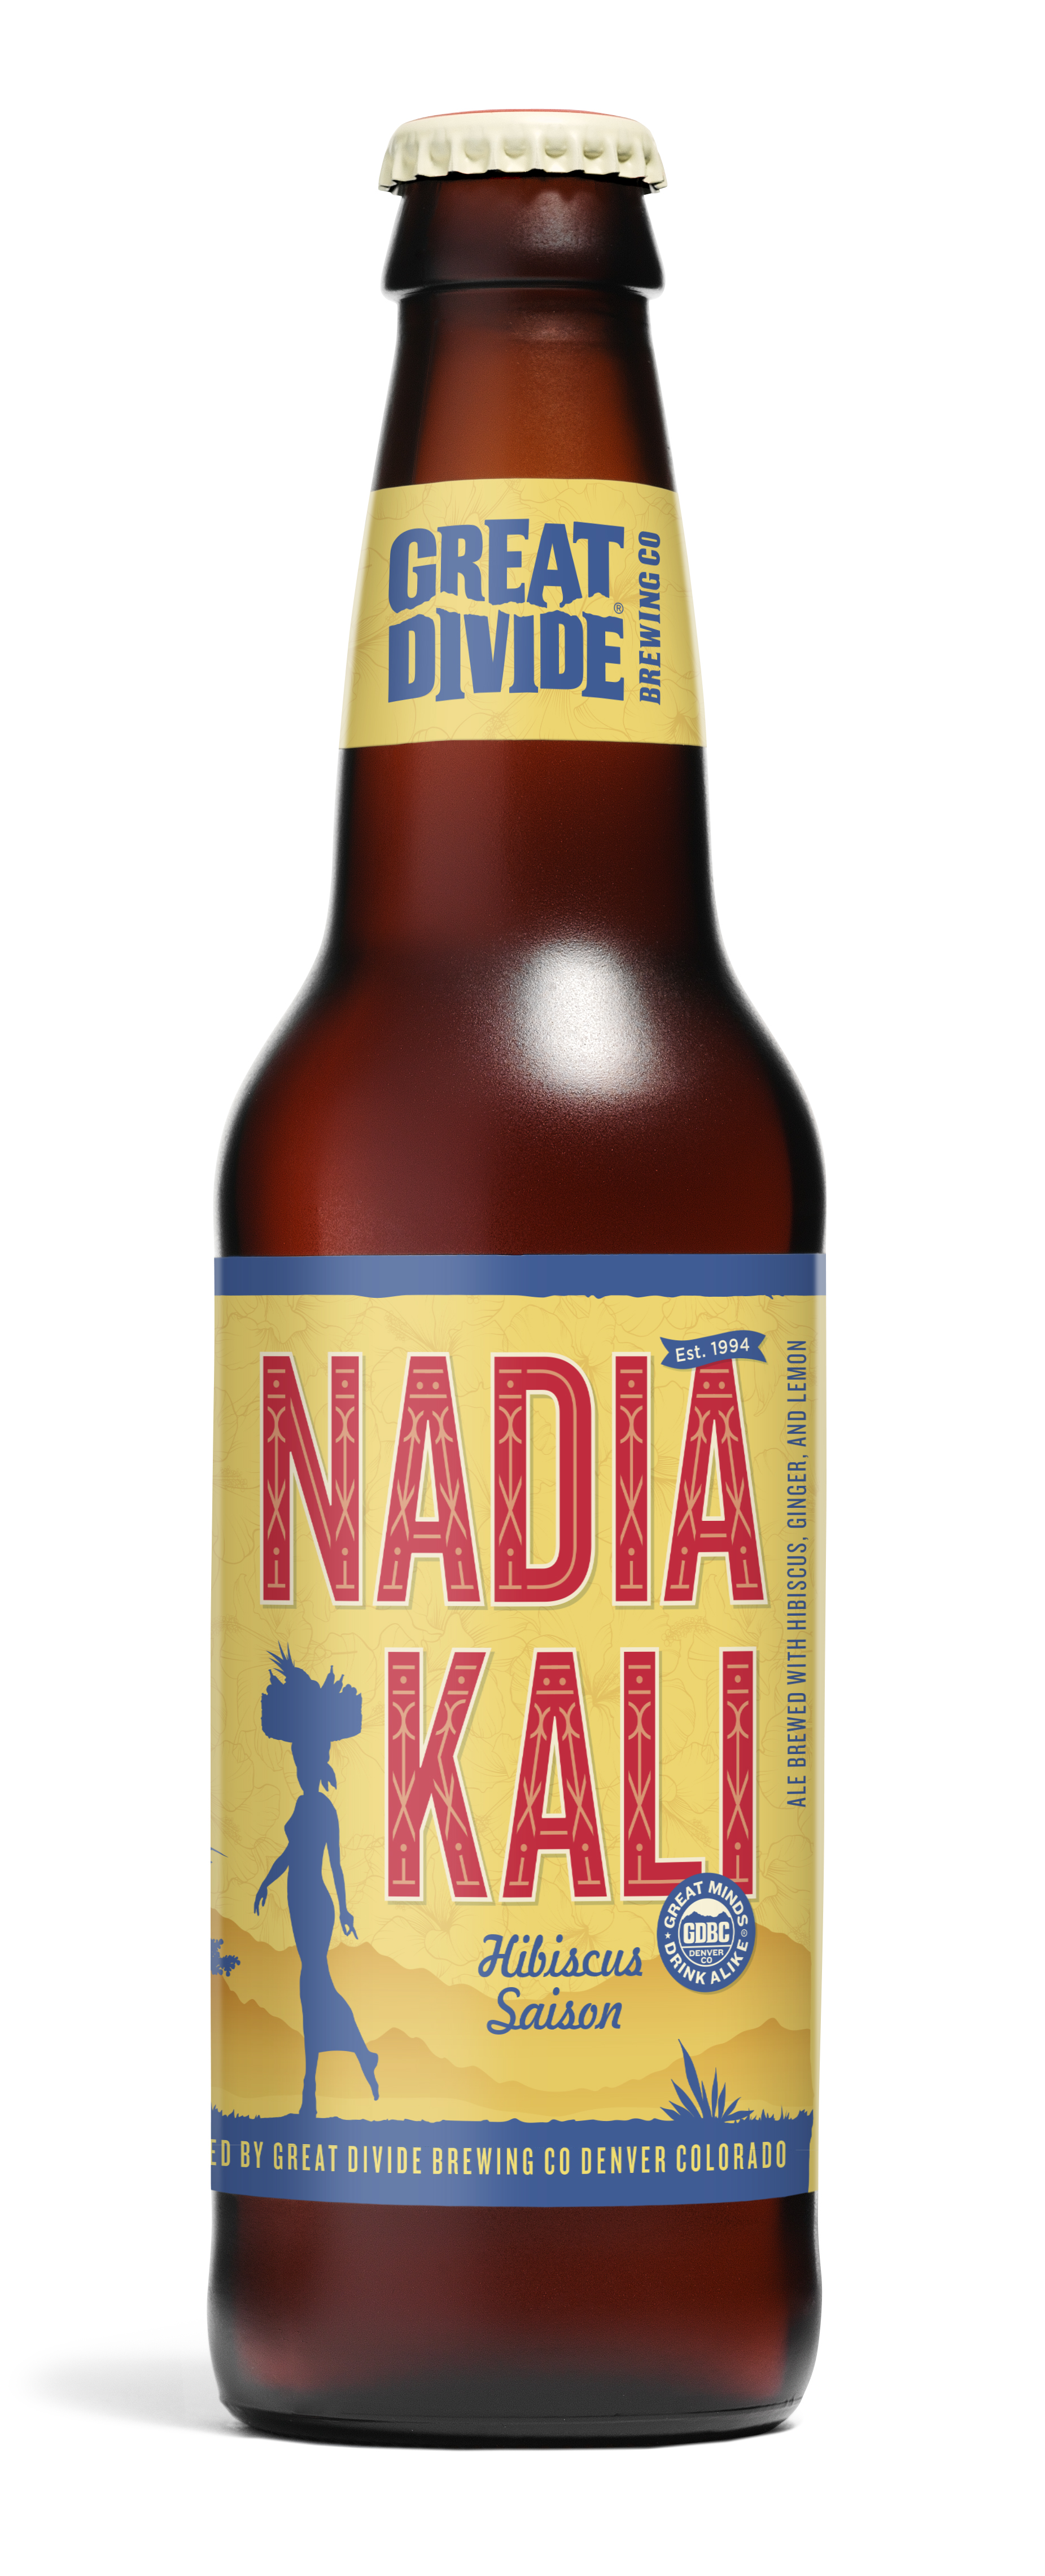 Great Divide Brewing Nadia Kali Hibiscus Saison 12 oz. Bottle (image courtesy of Great Divide)